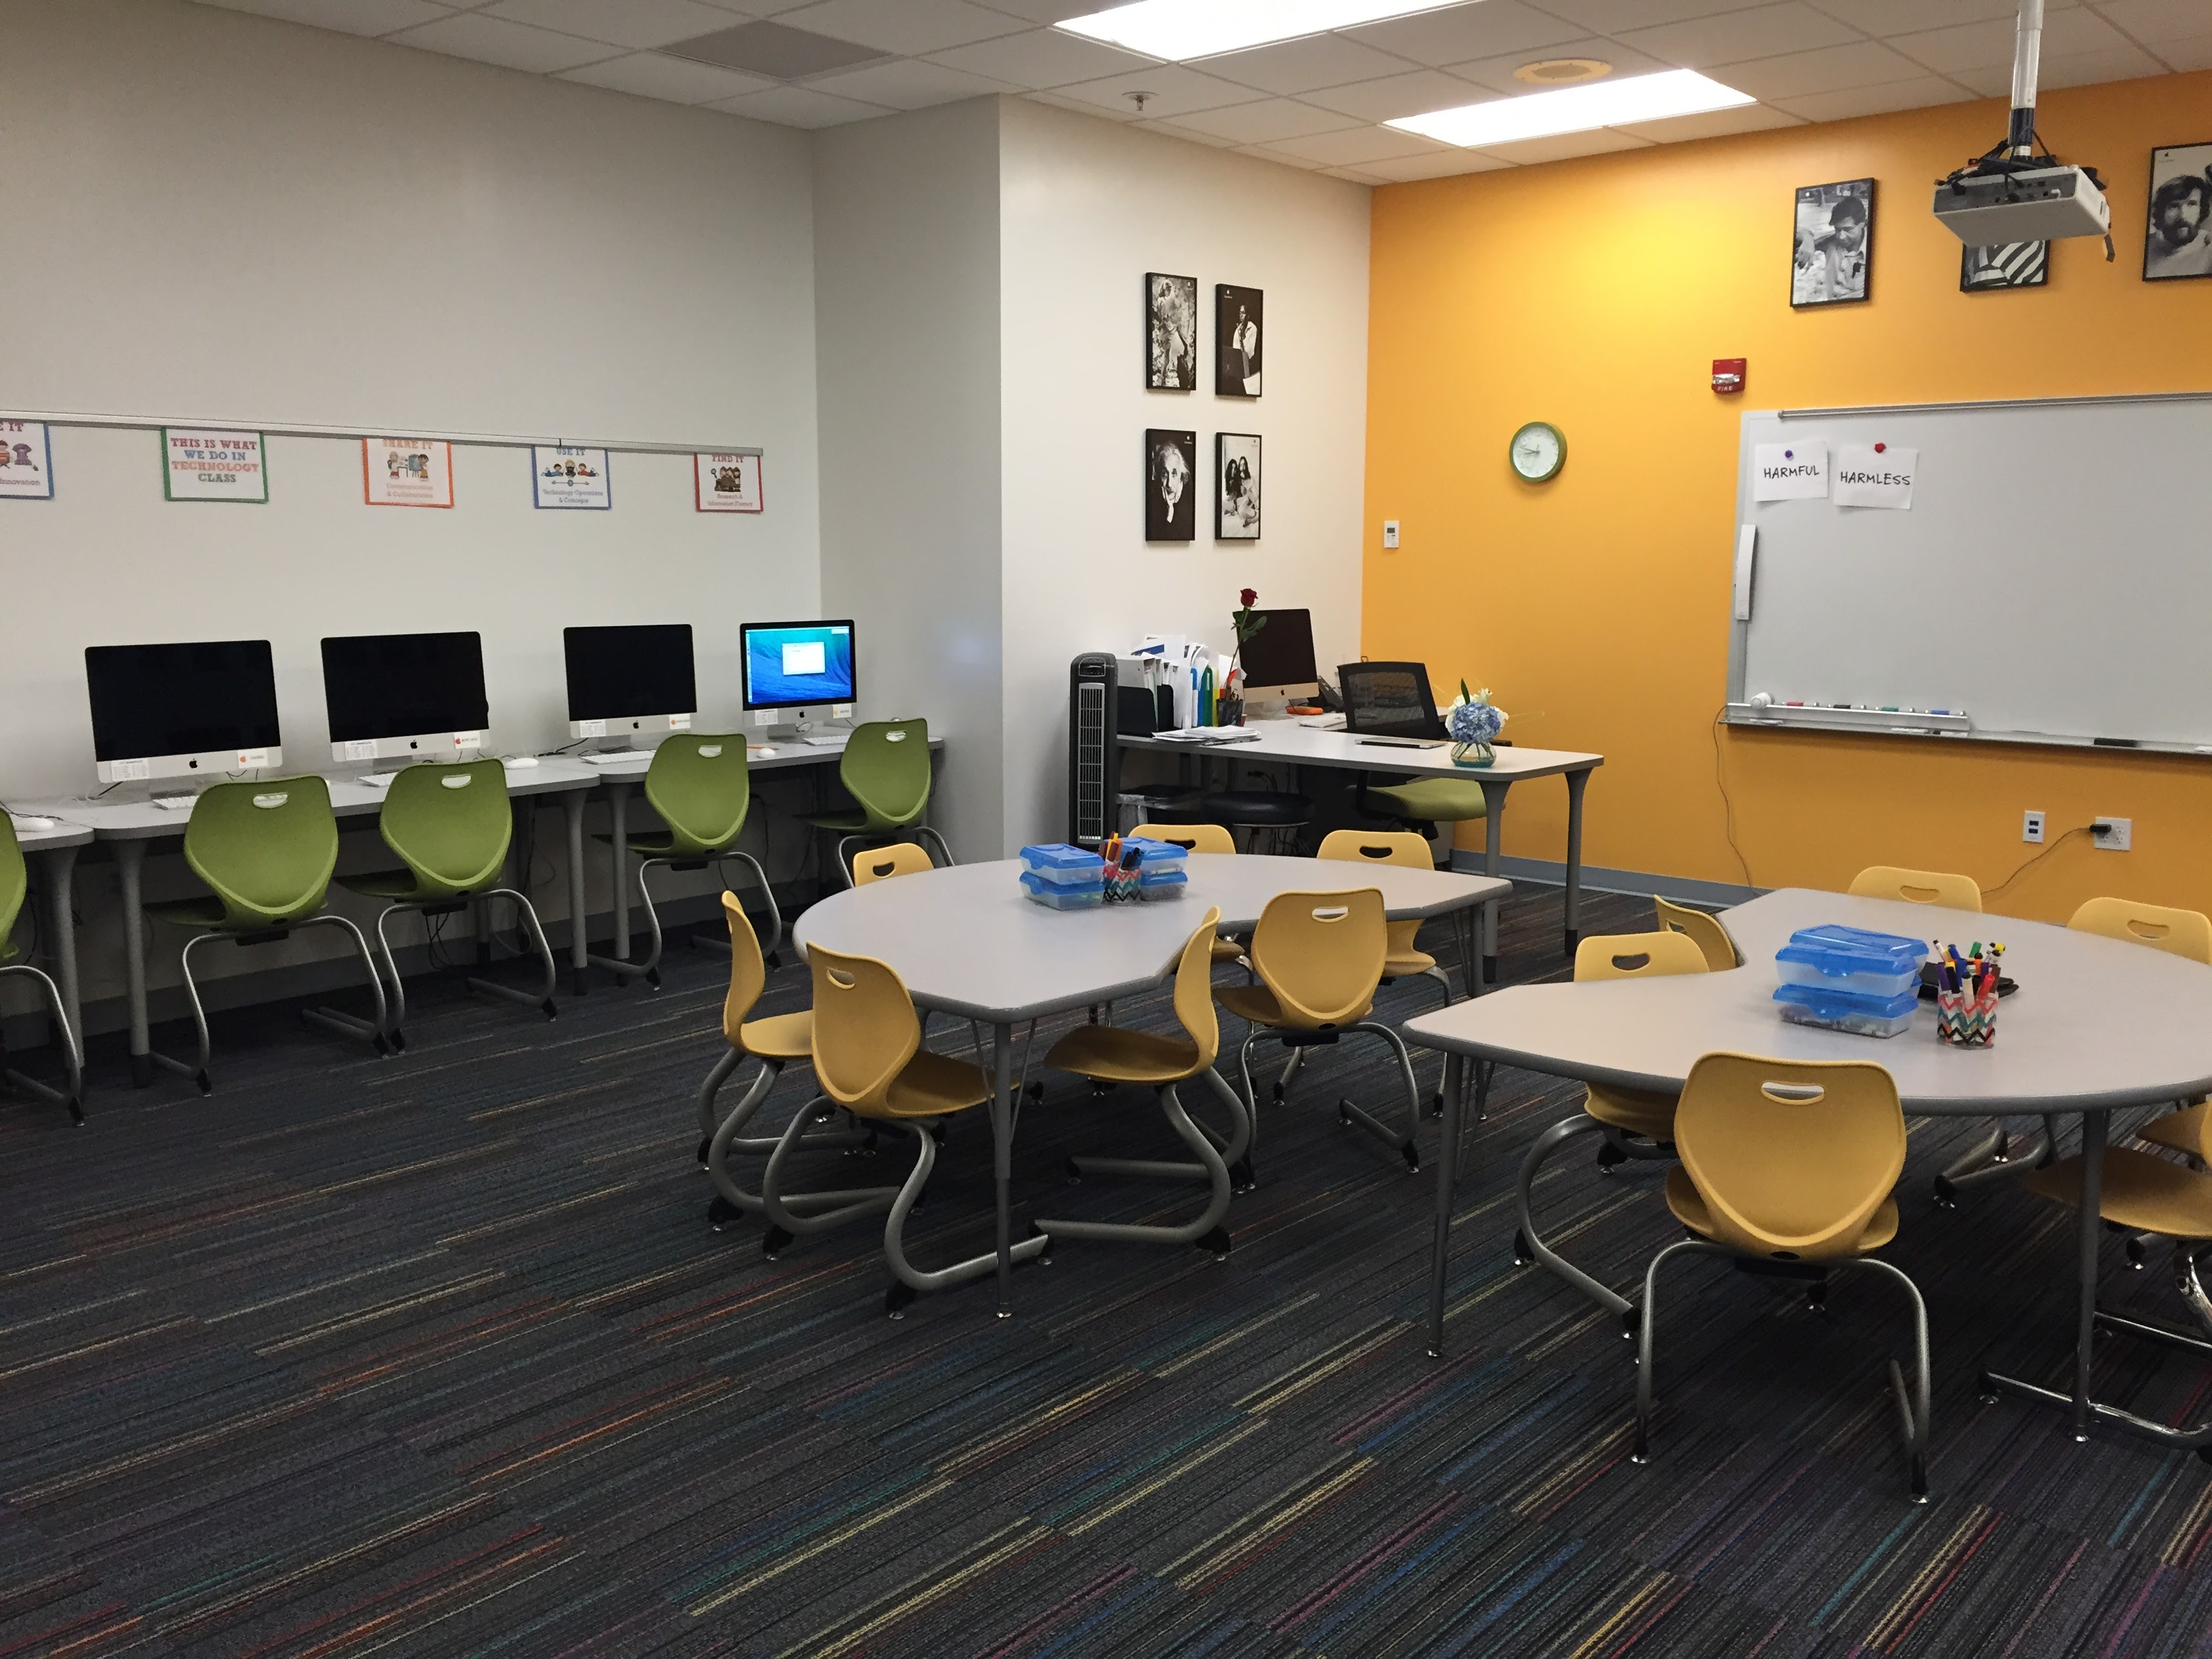 Innovative Ideas For Classroom Teaching ~ Ways to upgrade your classroom design cult of pedagogy